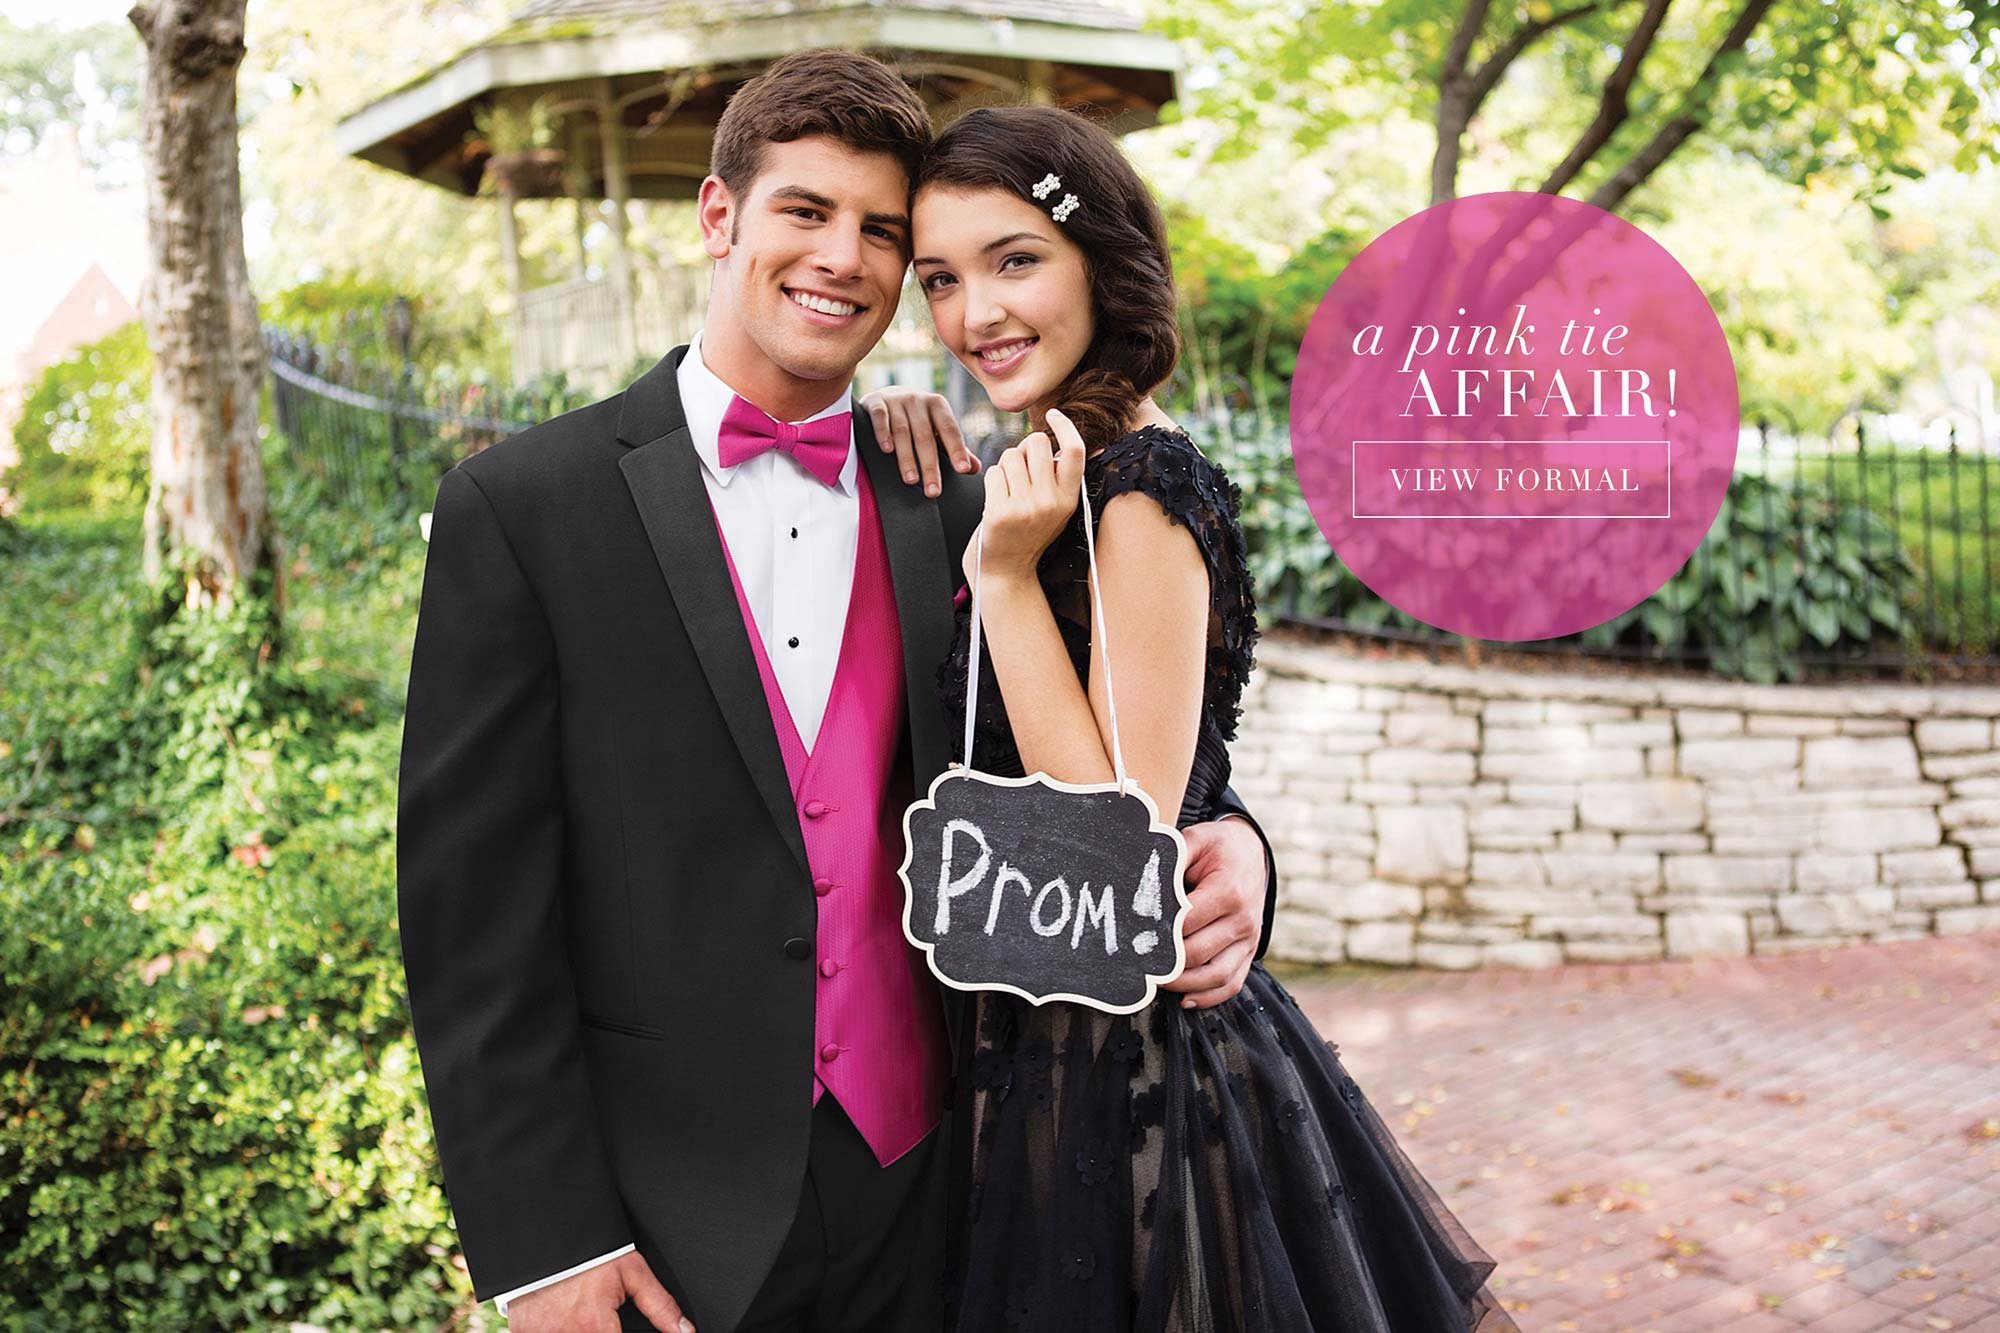 Prom Dresses Tulsa | Wedding Dresses Tulsa | Bridal Dresses Tulsa ...